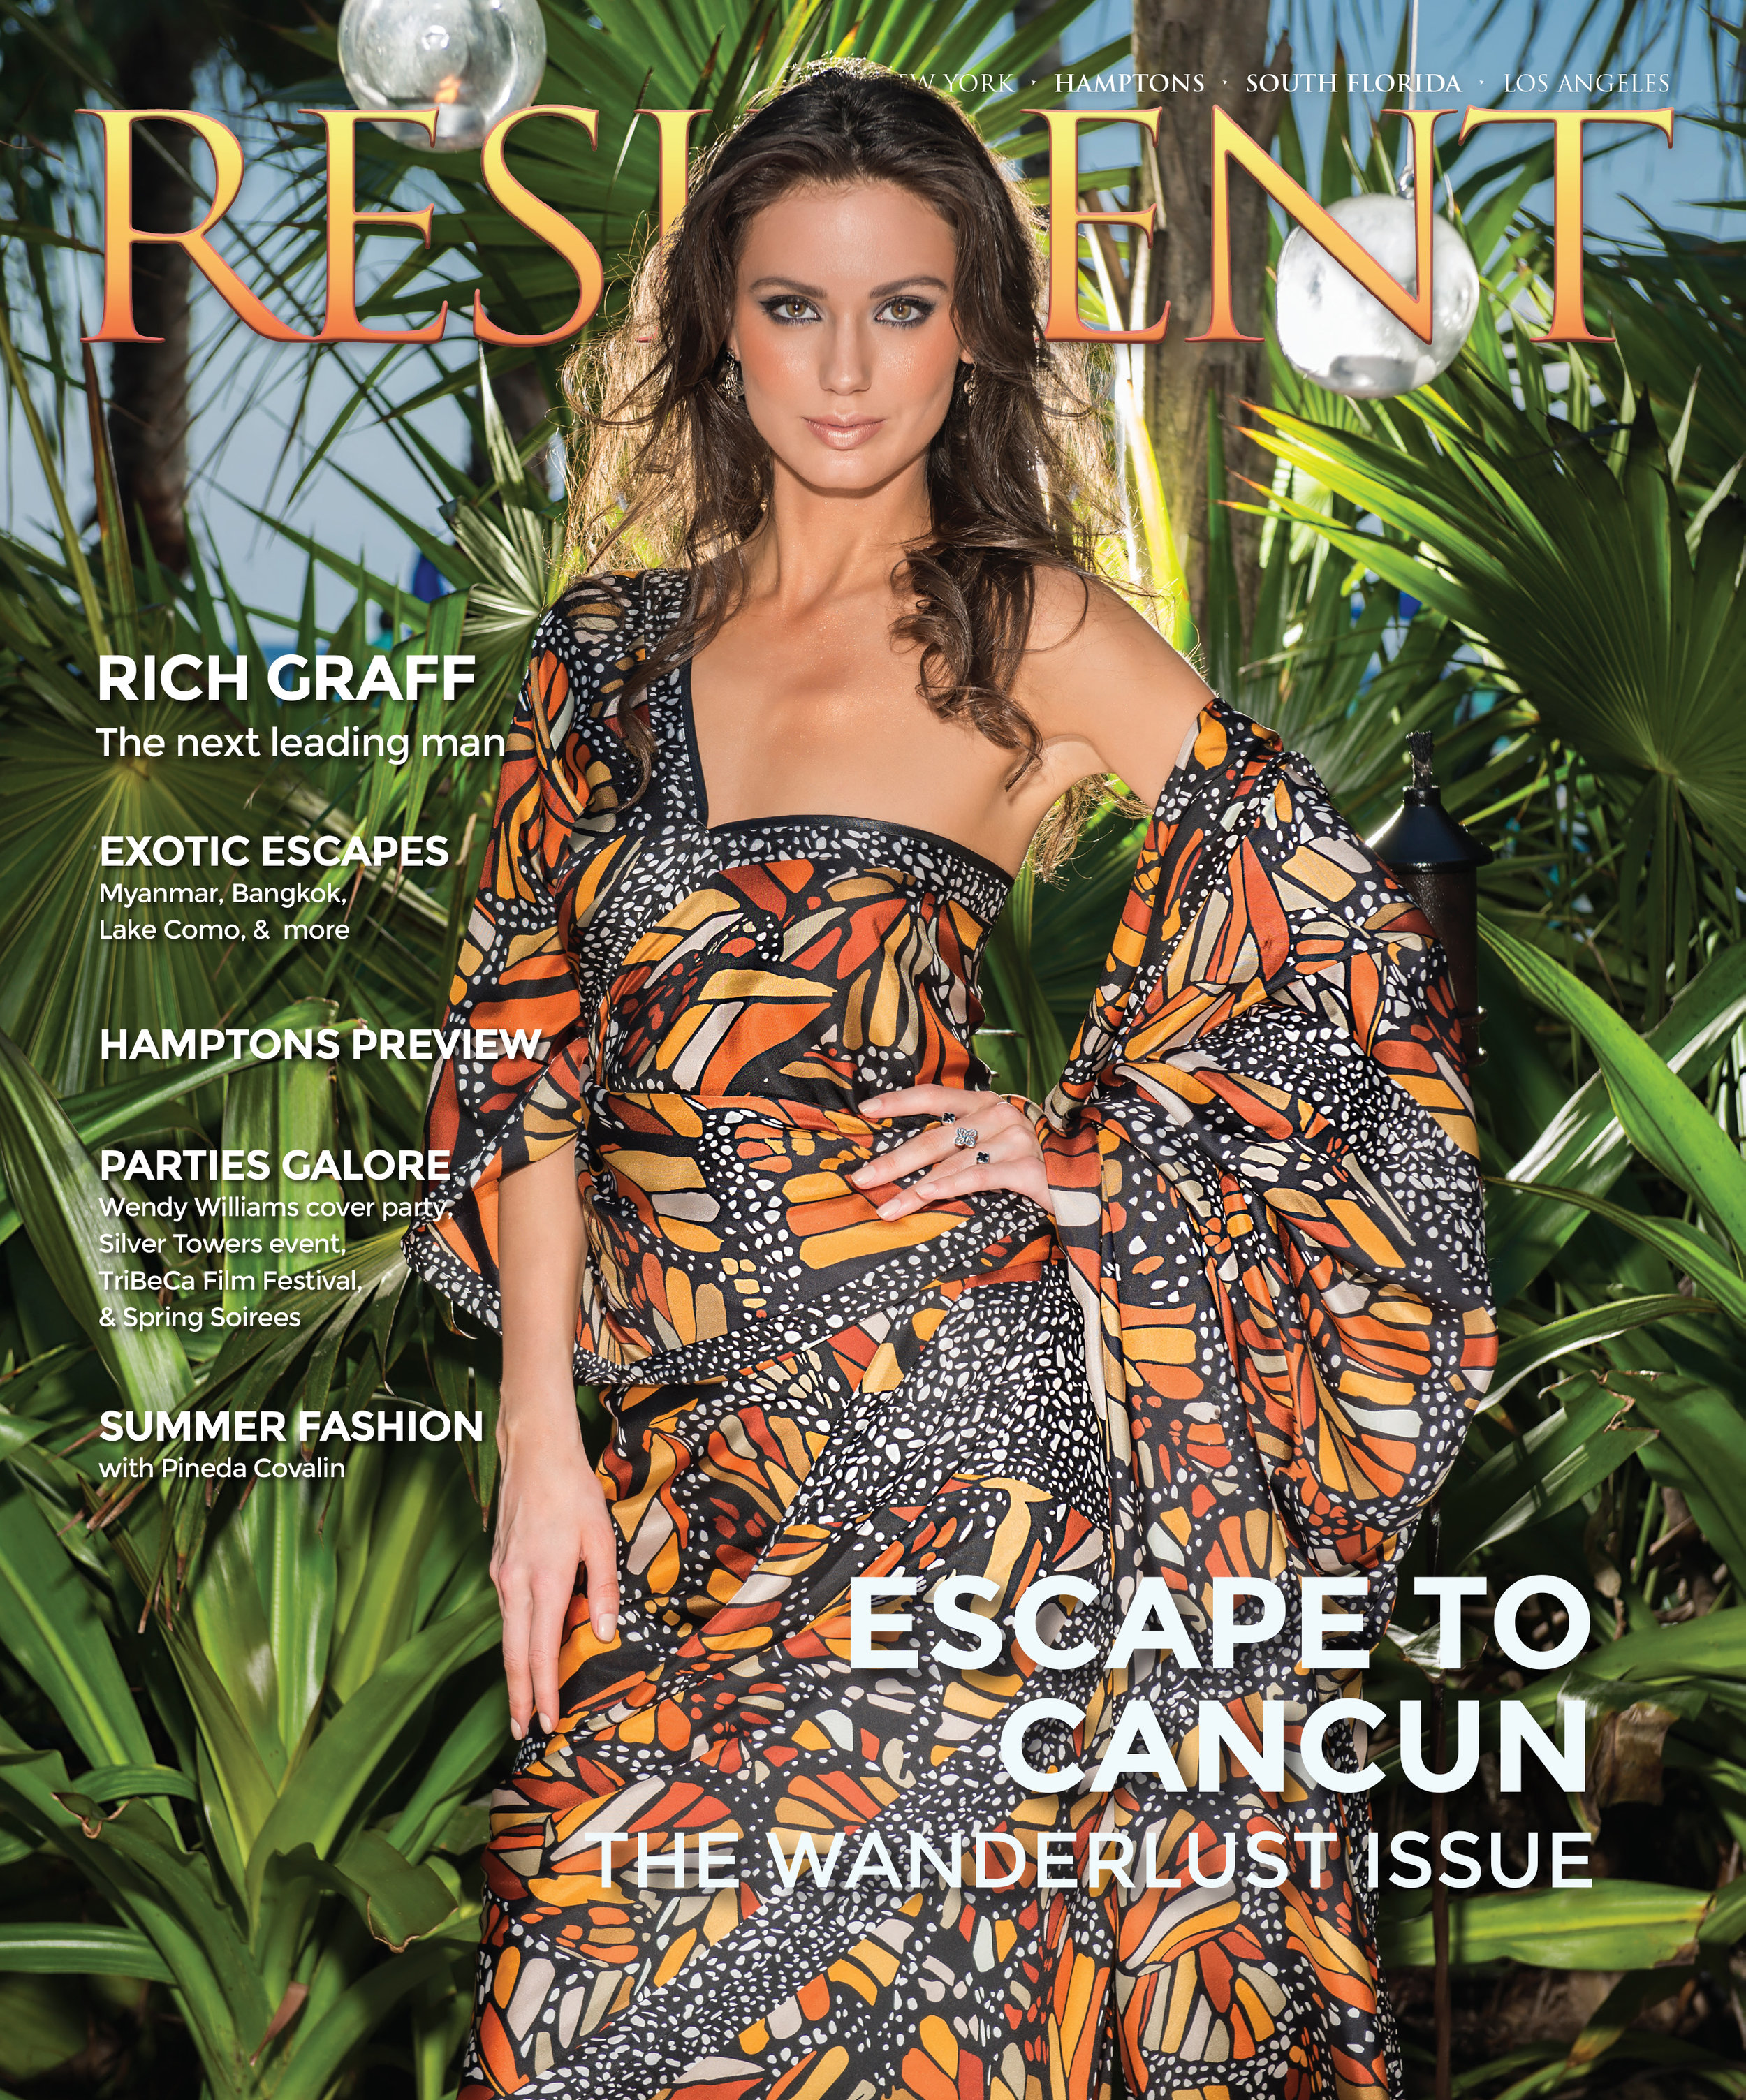 Resident Magazine Cover - May 2017 - photo by Andrew Werner.jpg